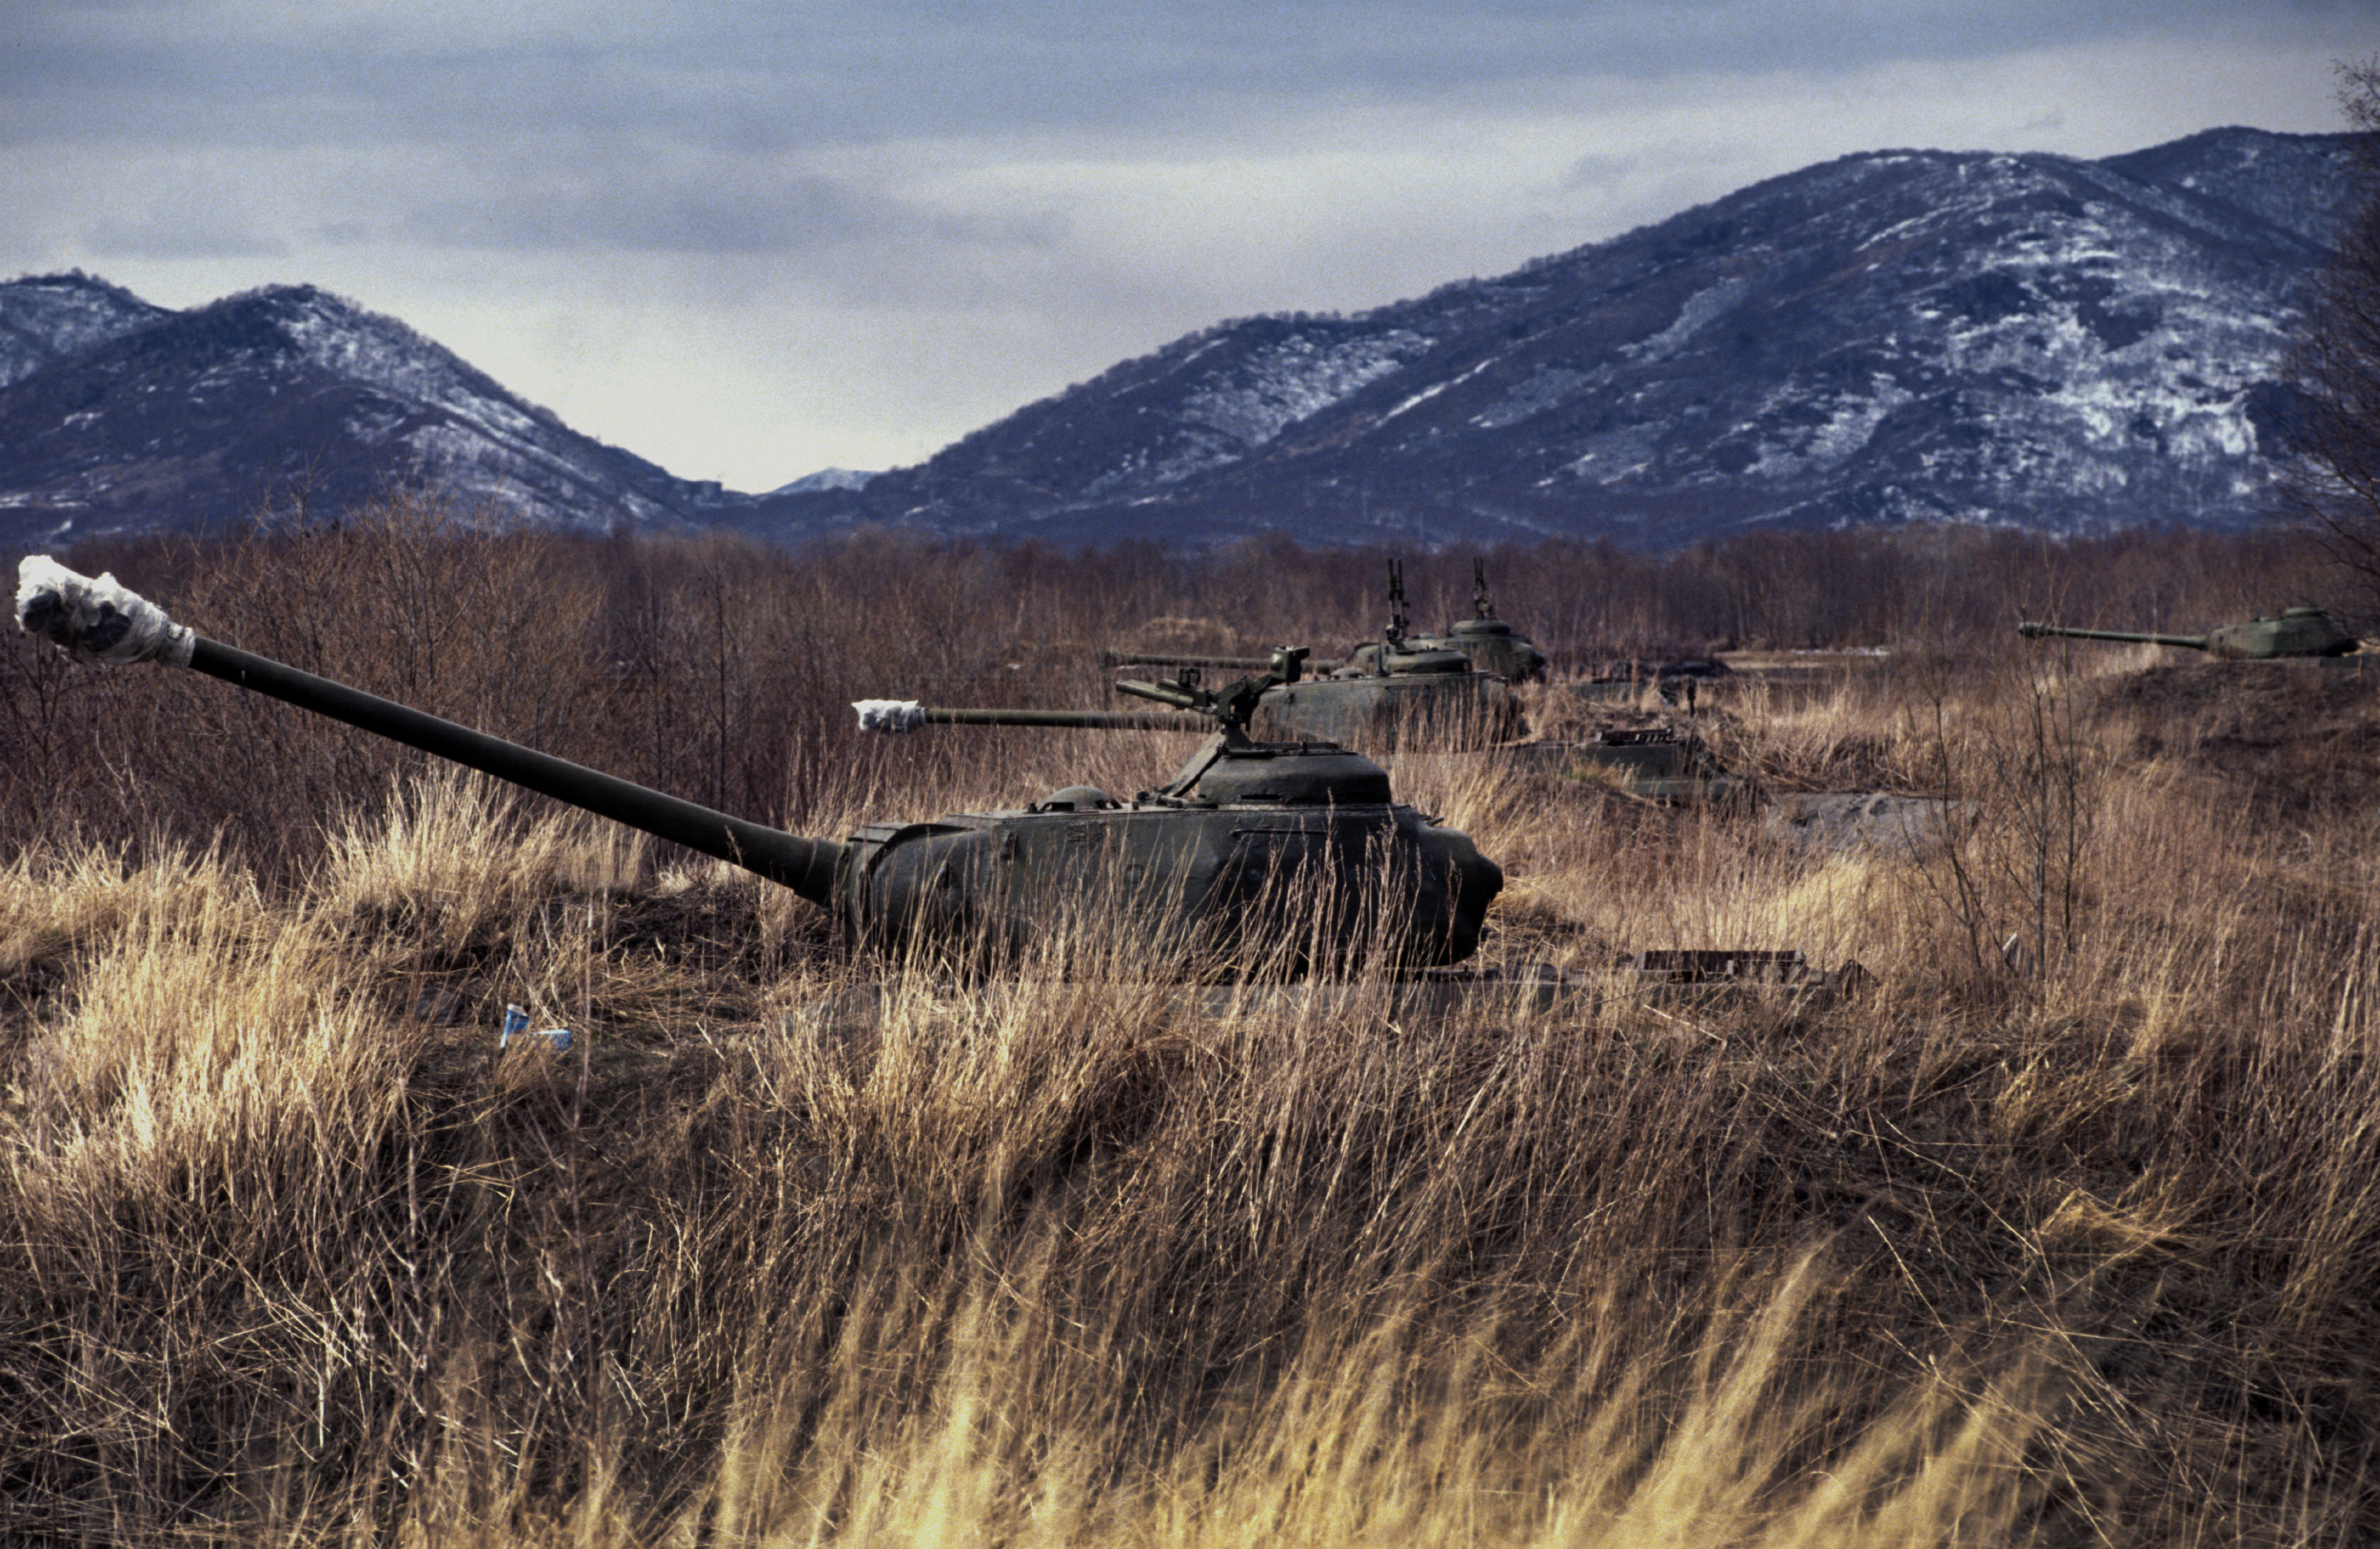 Decommissioned tanks on the Kamchatka peninsula, Russia. 1991